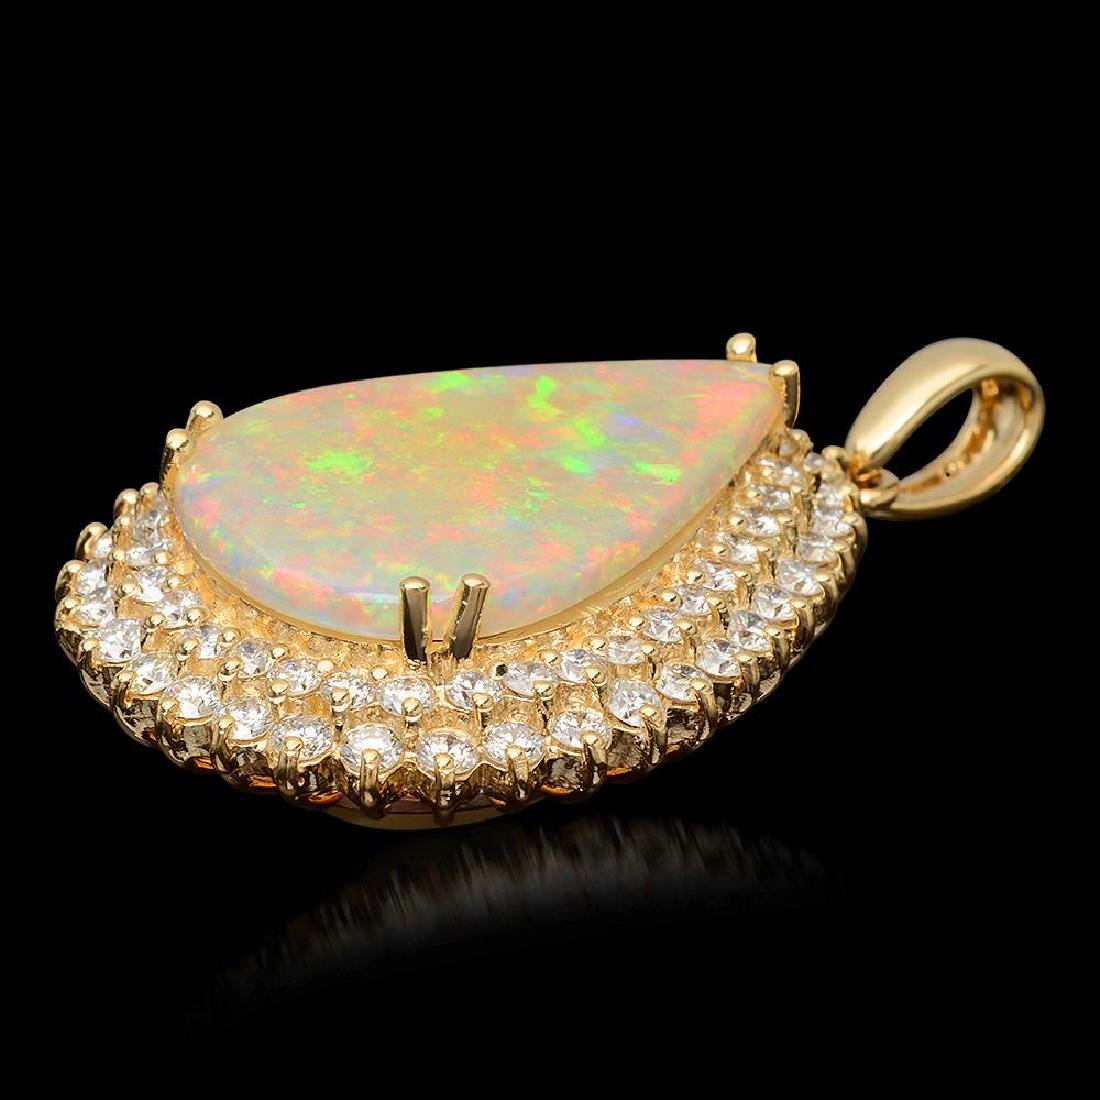 14K Gold 7.12ct Opal & 2.03ct Diamond Pendant - 2